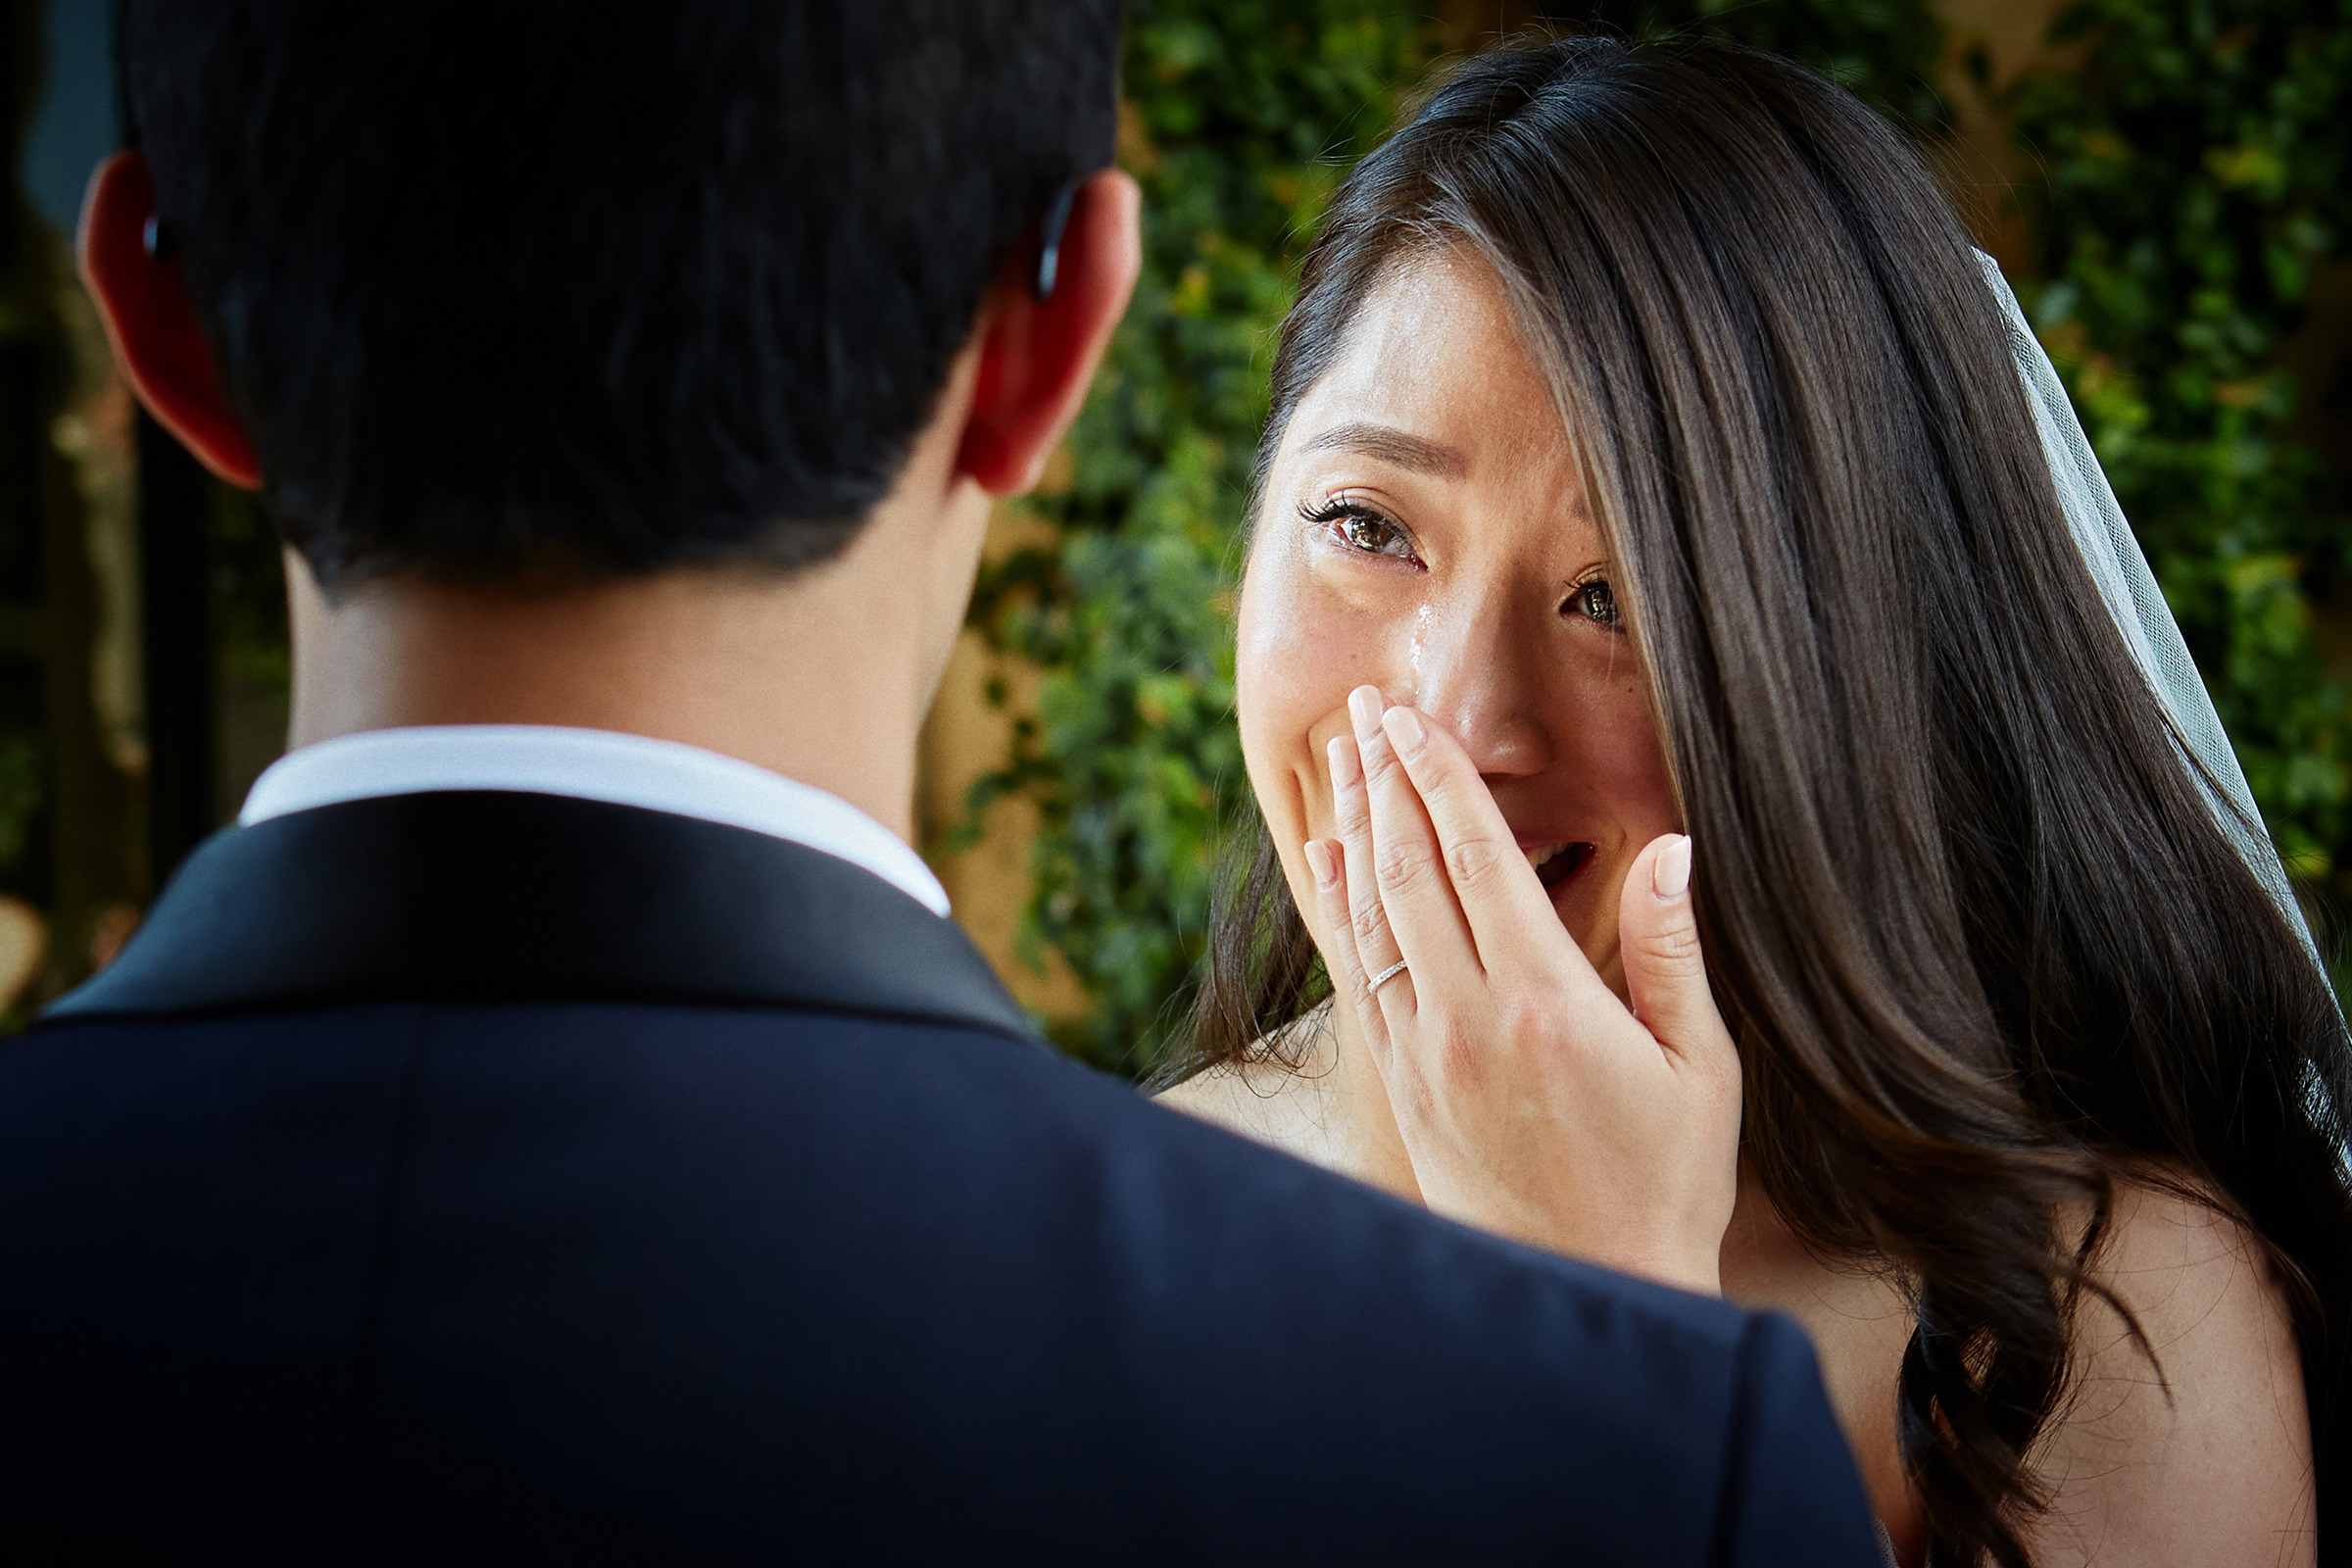 Tearful bride at ceremony - photo by Andrea Bagnasco Fotografie